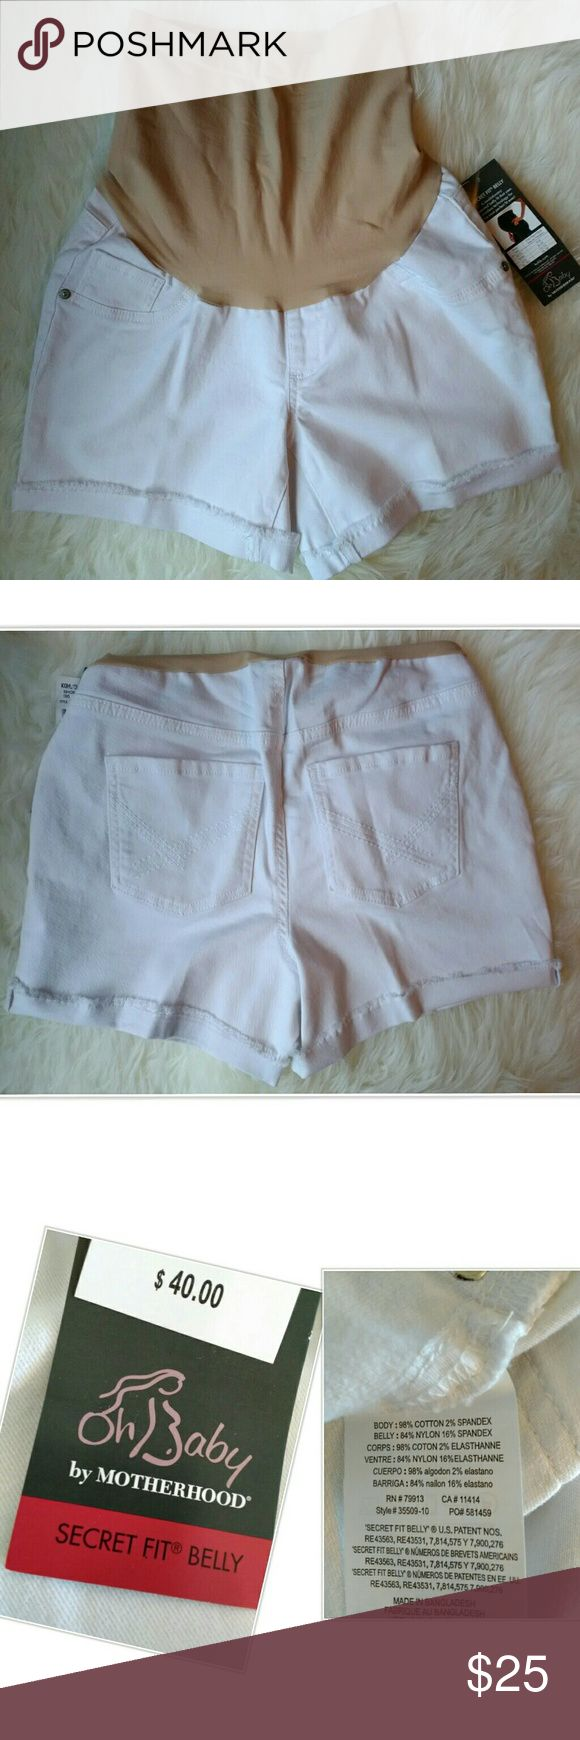 Oh Baby by Motherhood White Denim Cut Off Shorts Oh Baby By Motherhood White Denim Cut Off Shorts Brand New With Tags Retails For $40. Pictures Are Our Stock Photos For This Style & Color, Multiple Sizes Available In Listing. Belly Bands May Have Indent From Hangers But Have Been Inspected And Are Not Damaged. Front Pockets Are Sewn Faux Pockets. Purchase Pre-Pregnancy Size. Reasonable Offers Considered,  No Trades. Oh Baby by Motherhood Shorts Jean Shorts